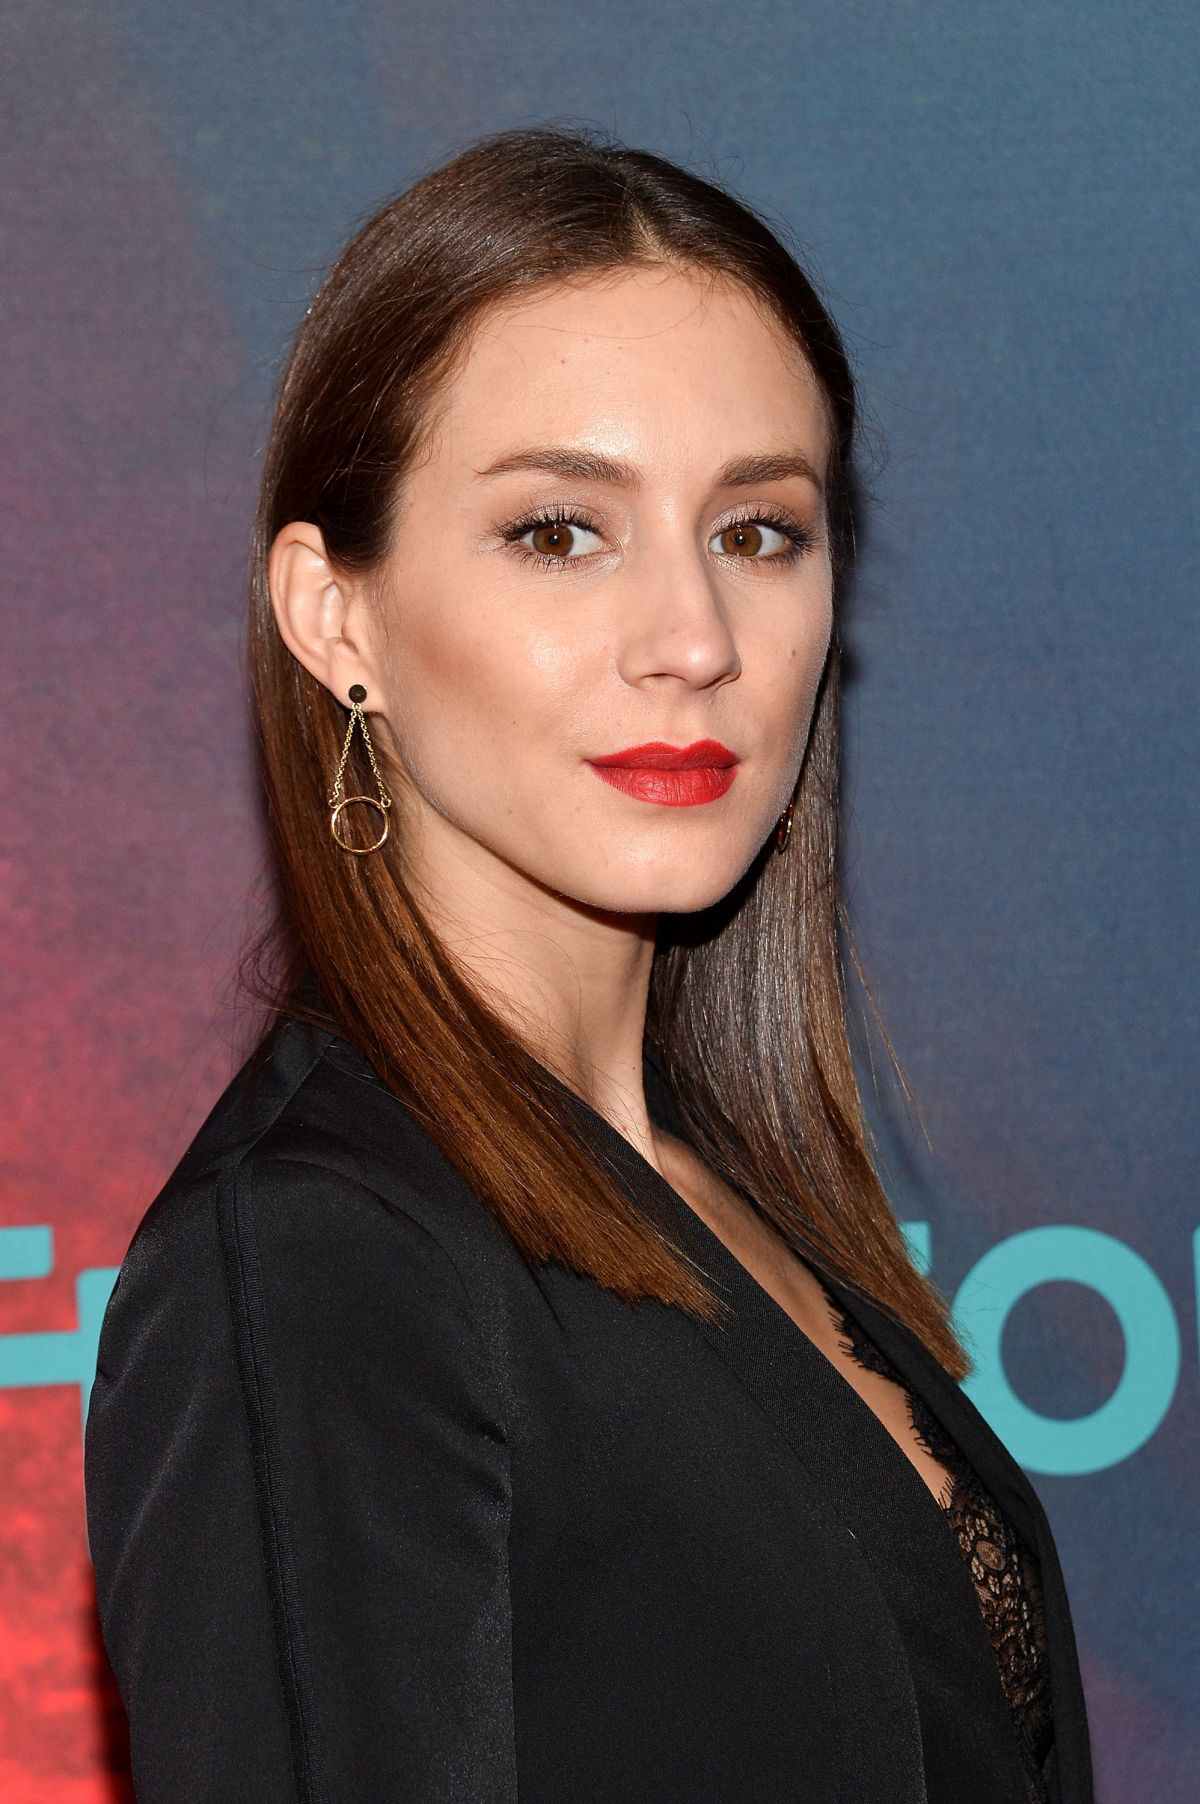 Troian Bellisario At 2017 Freeform Upfront in NYC   troian-bellisario-at-2017-freeform-upfront-in-nyc_2